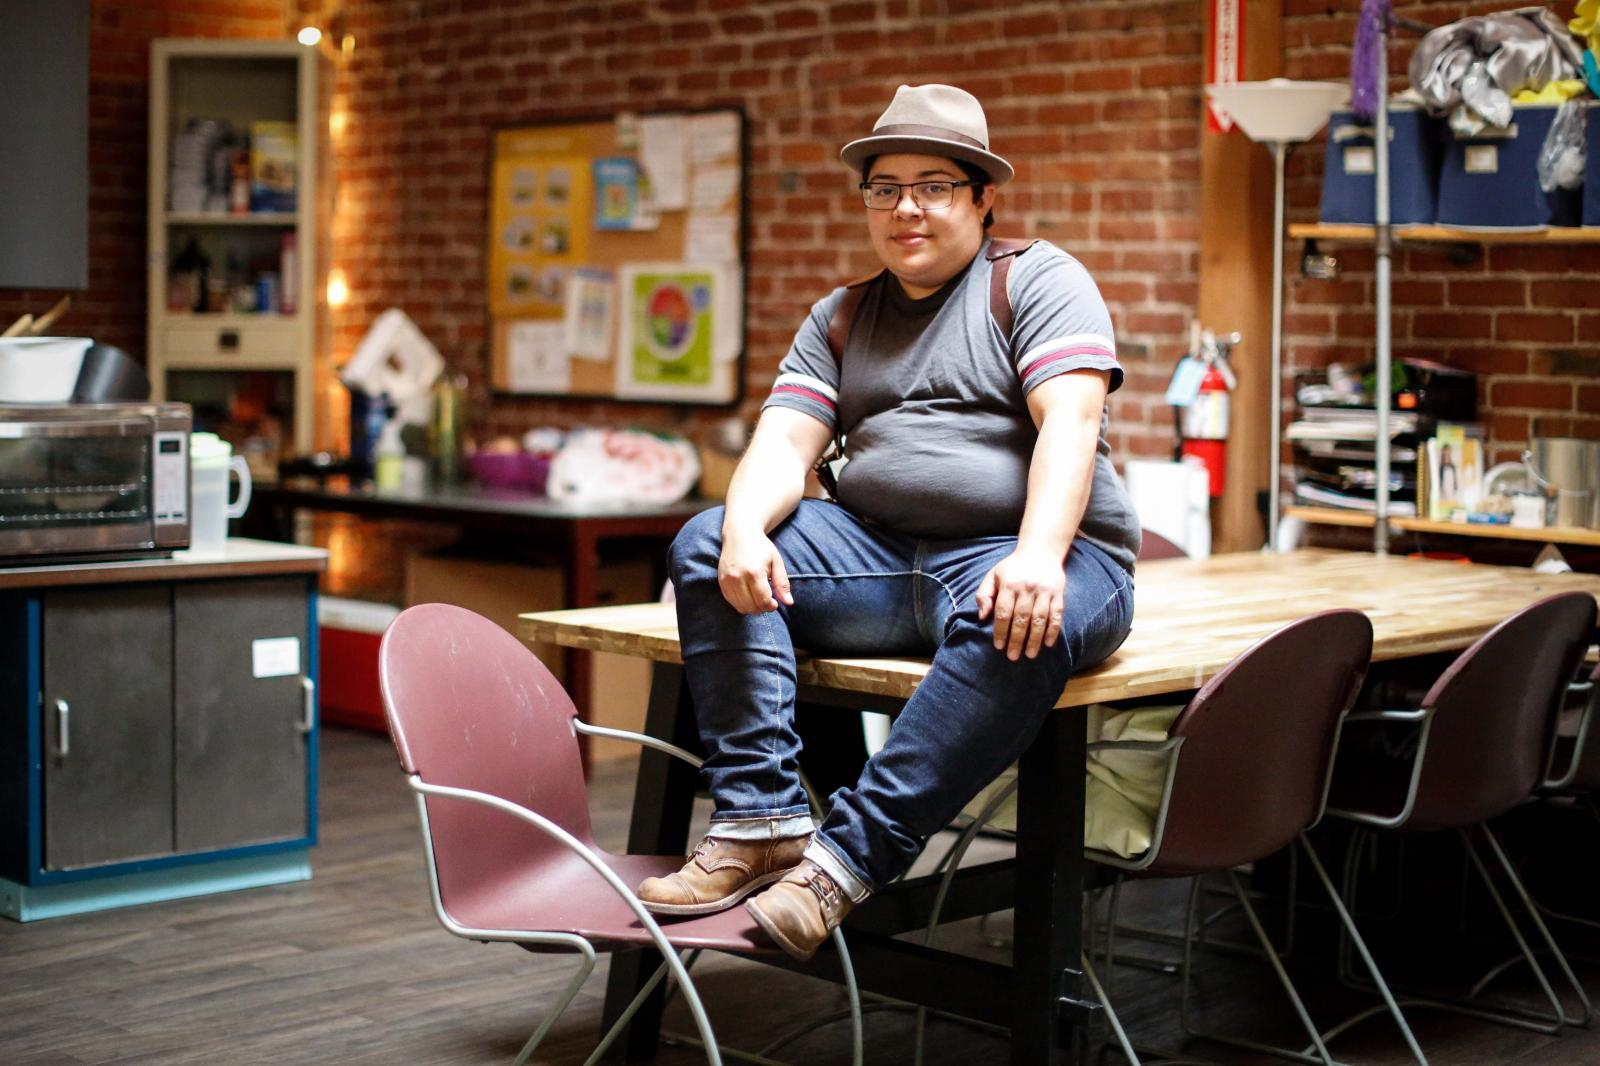 Erik C, 31, at the San Jose LGBTQ Youth Space, which has become like a second home to them, on Tuesday, May 14, 2019 in San Jose, Calif.